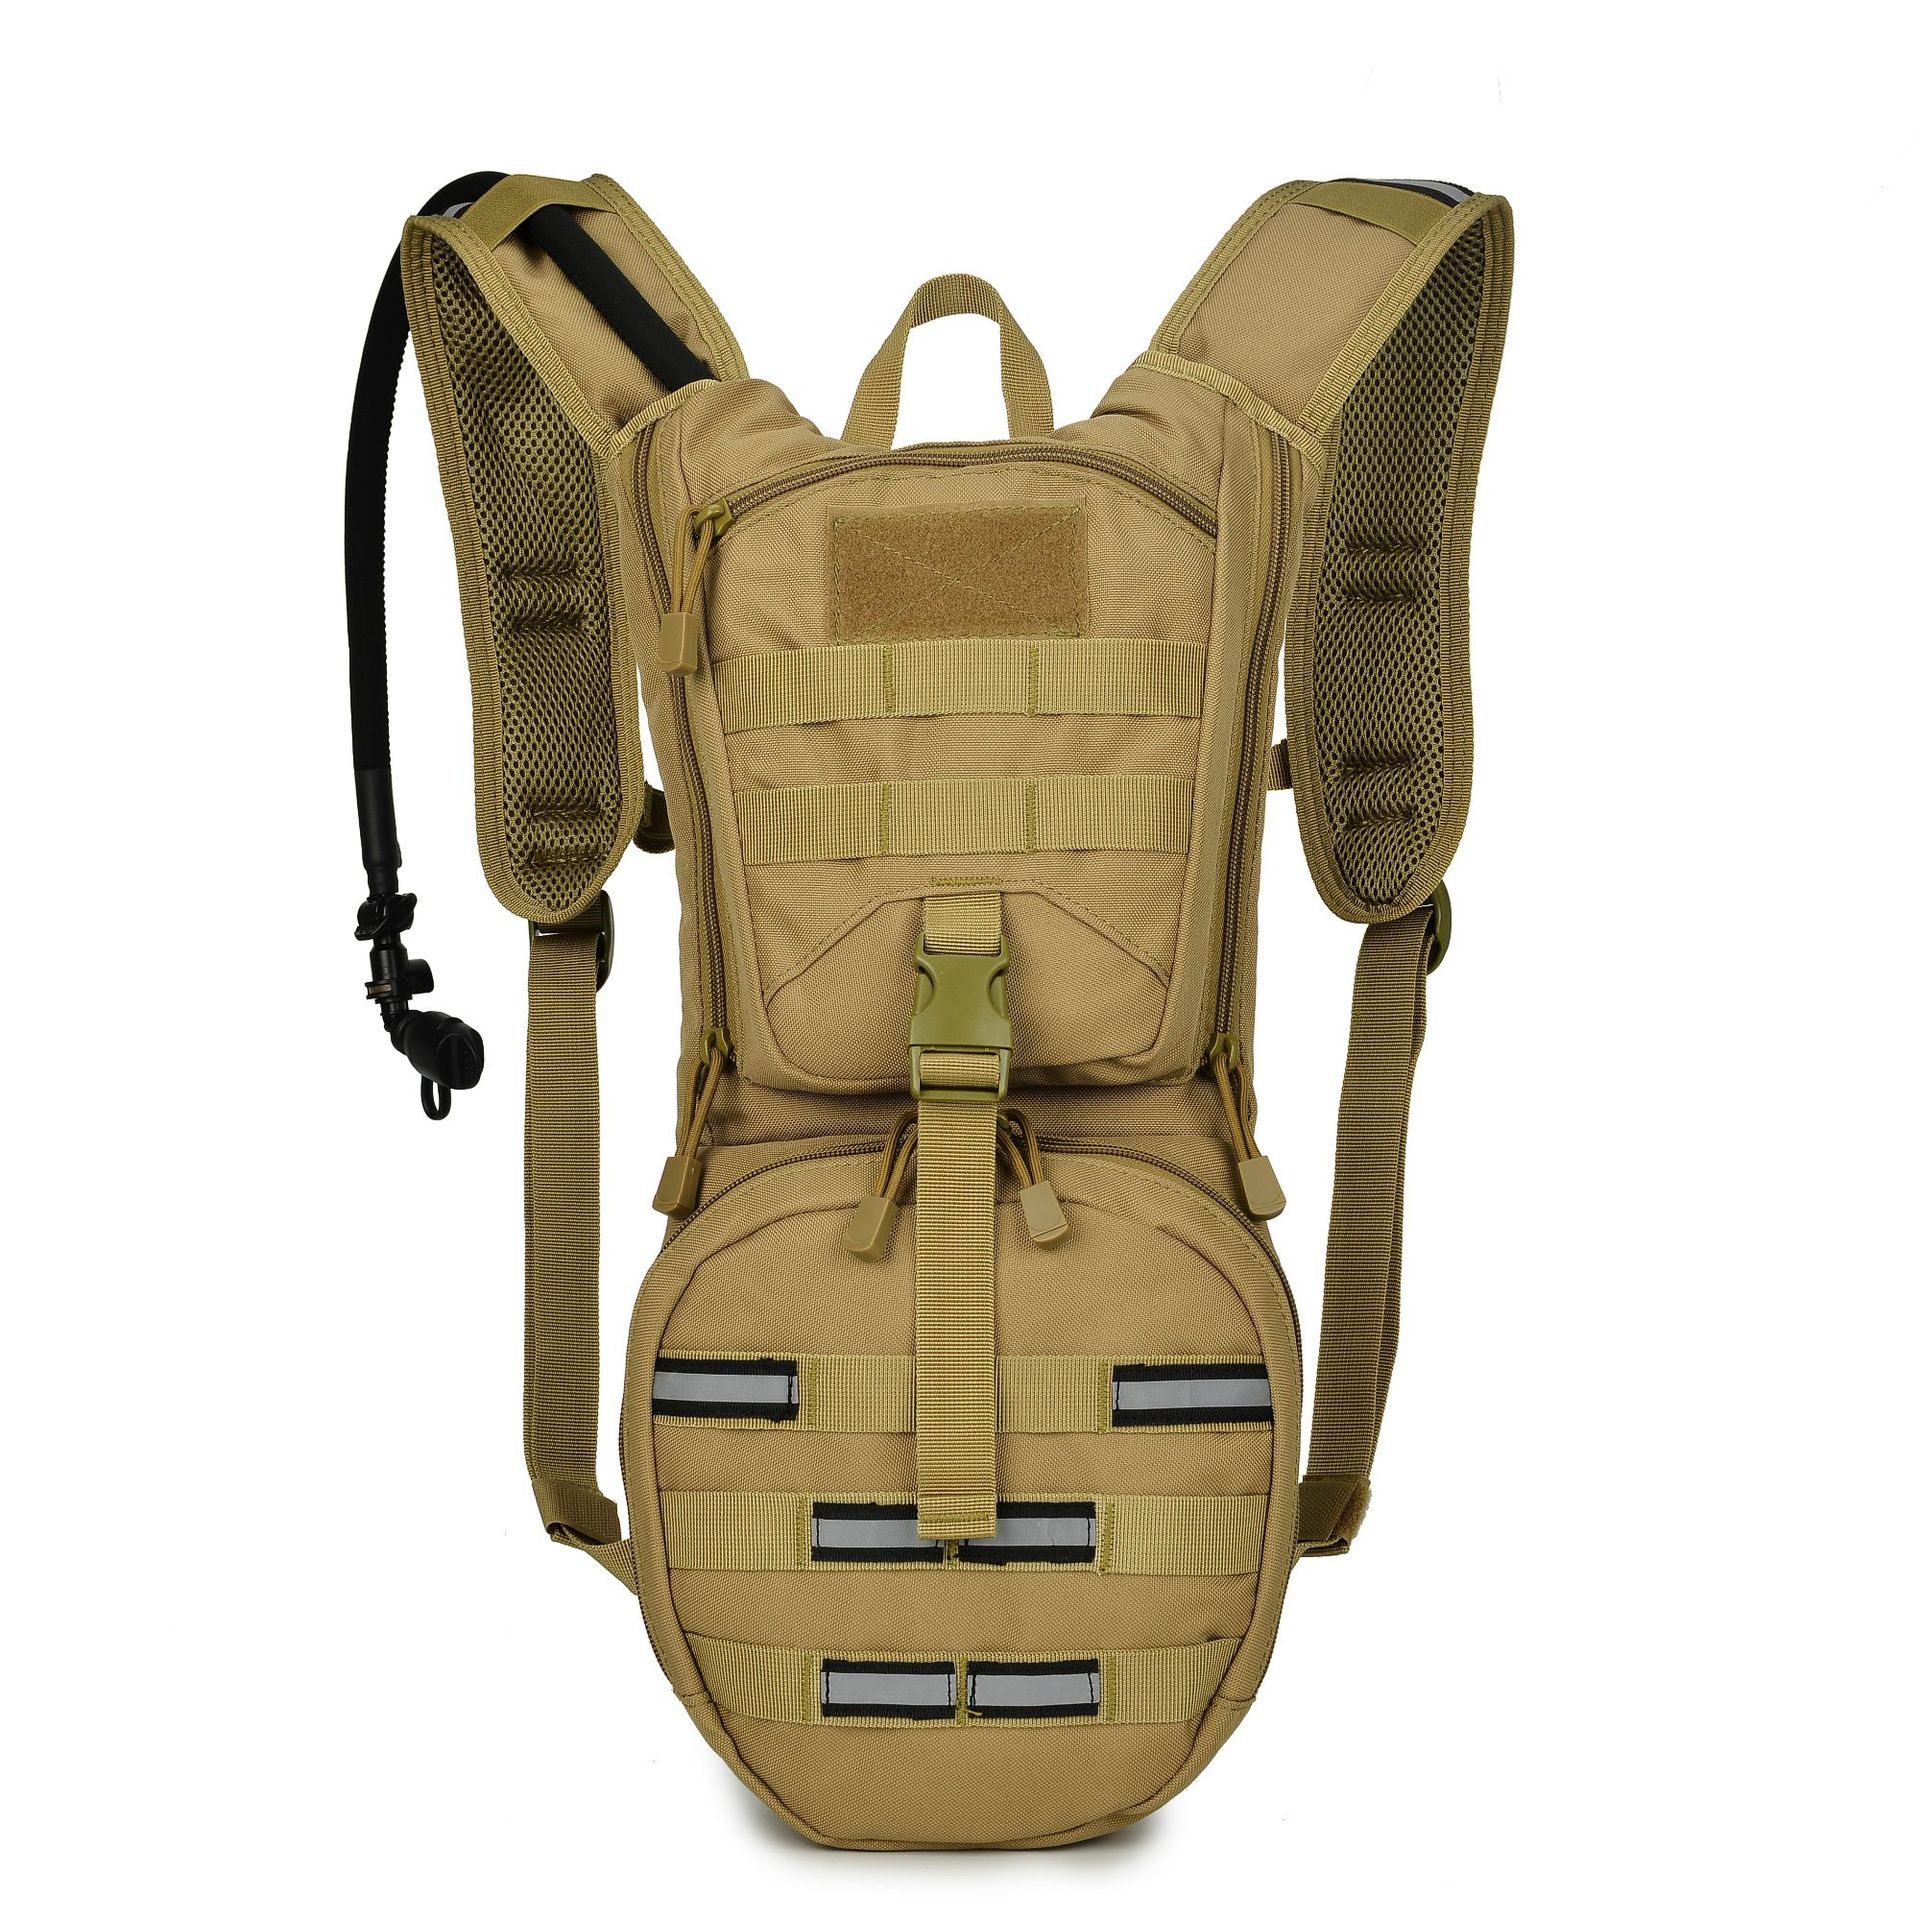 Outdoor Ultra Large Capacity Mountain Climbing Backpack Travel Sports Backpack Army Fans 3p Shoulder Tactical Backpack